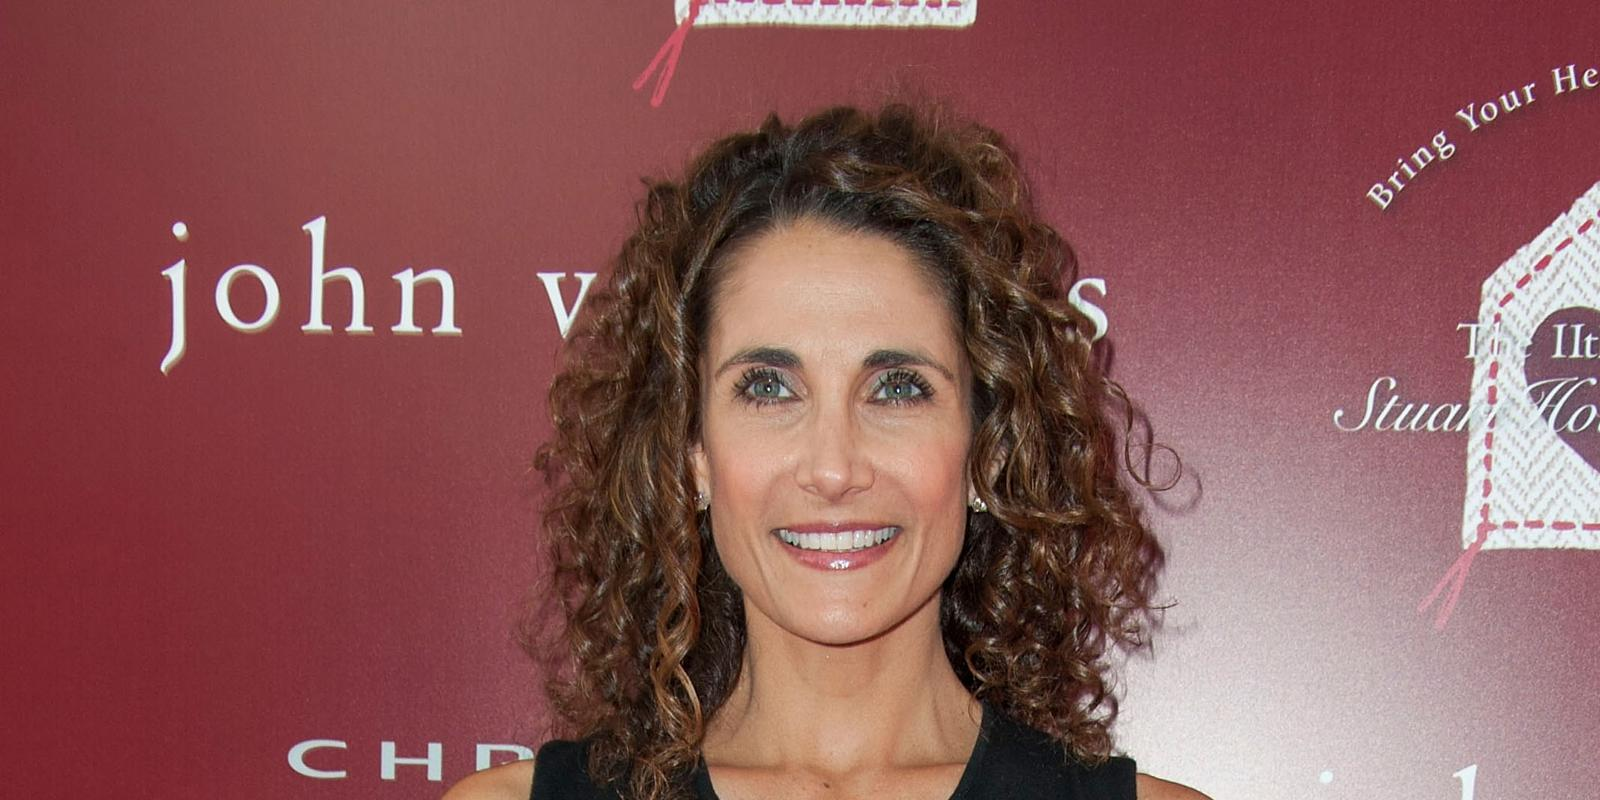 melina kanakaredes measurementsmelina kanakaredes height, melina kanakaredes instagram, melina kanakaredes twitter, melina kanakaredes, melina kanakaredes hot, мелина канакаредес, melina kanakaredes csi, melina kanakaredes photos, melina kanakaredes where is she now, melina kanakaredes net worth, melina kanakaredes husband, melina kanakaredes imdb, melina kanakaredes measurements, melina kanakaredes bio